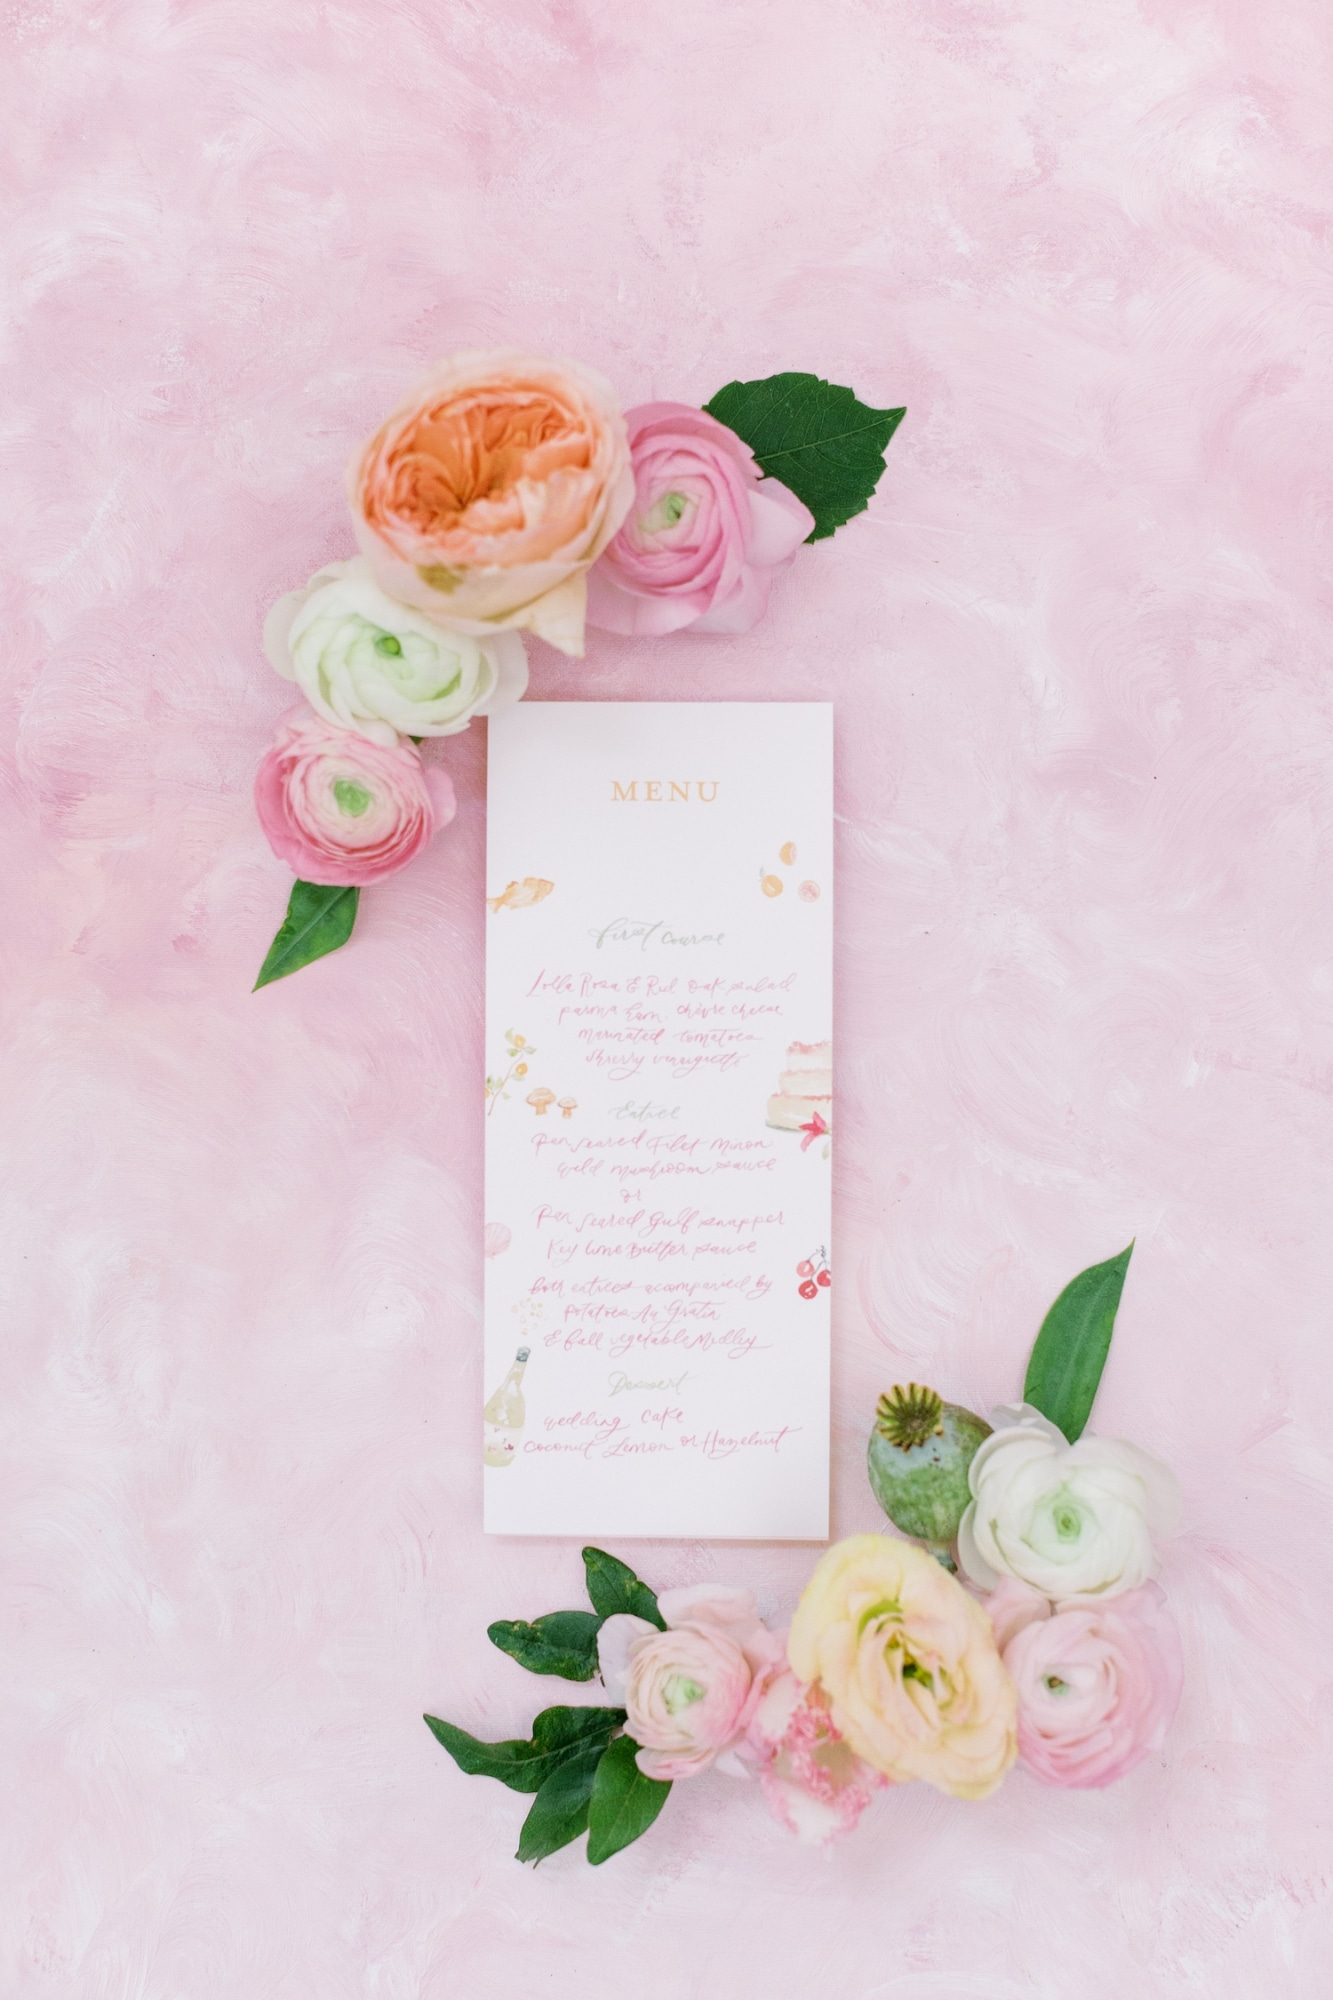 pink script menu for wedding with florals with leaves in pink background